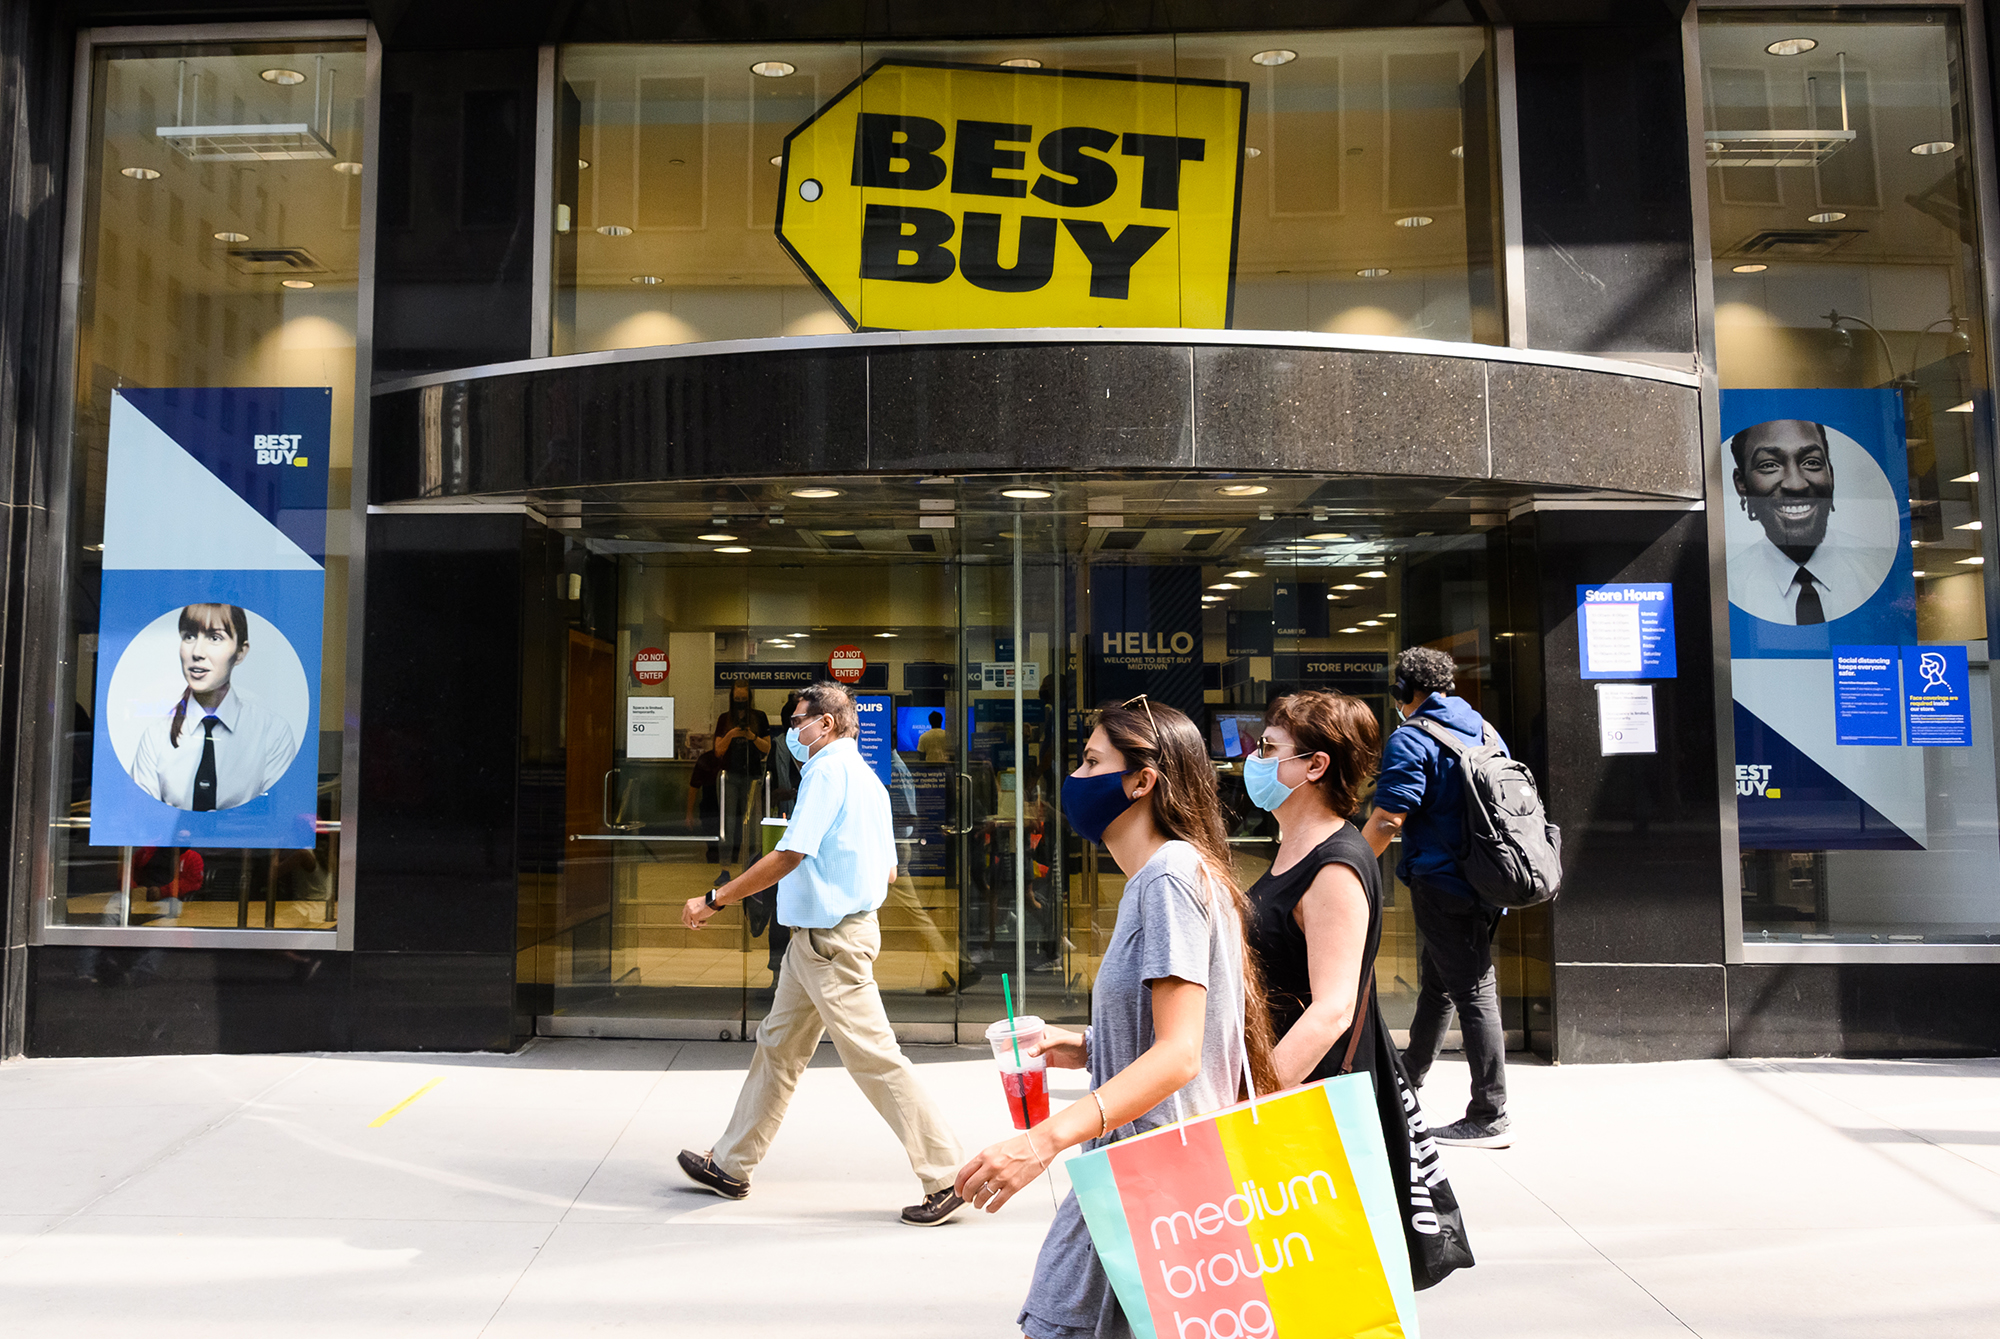 Best Buy just had its best quarter in 25 years